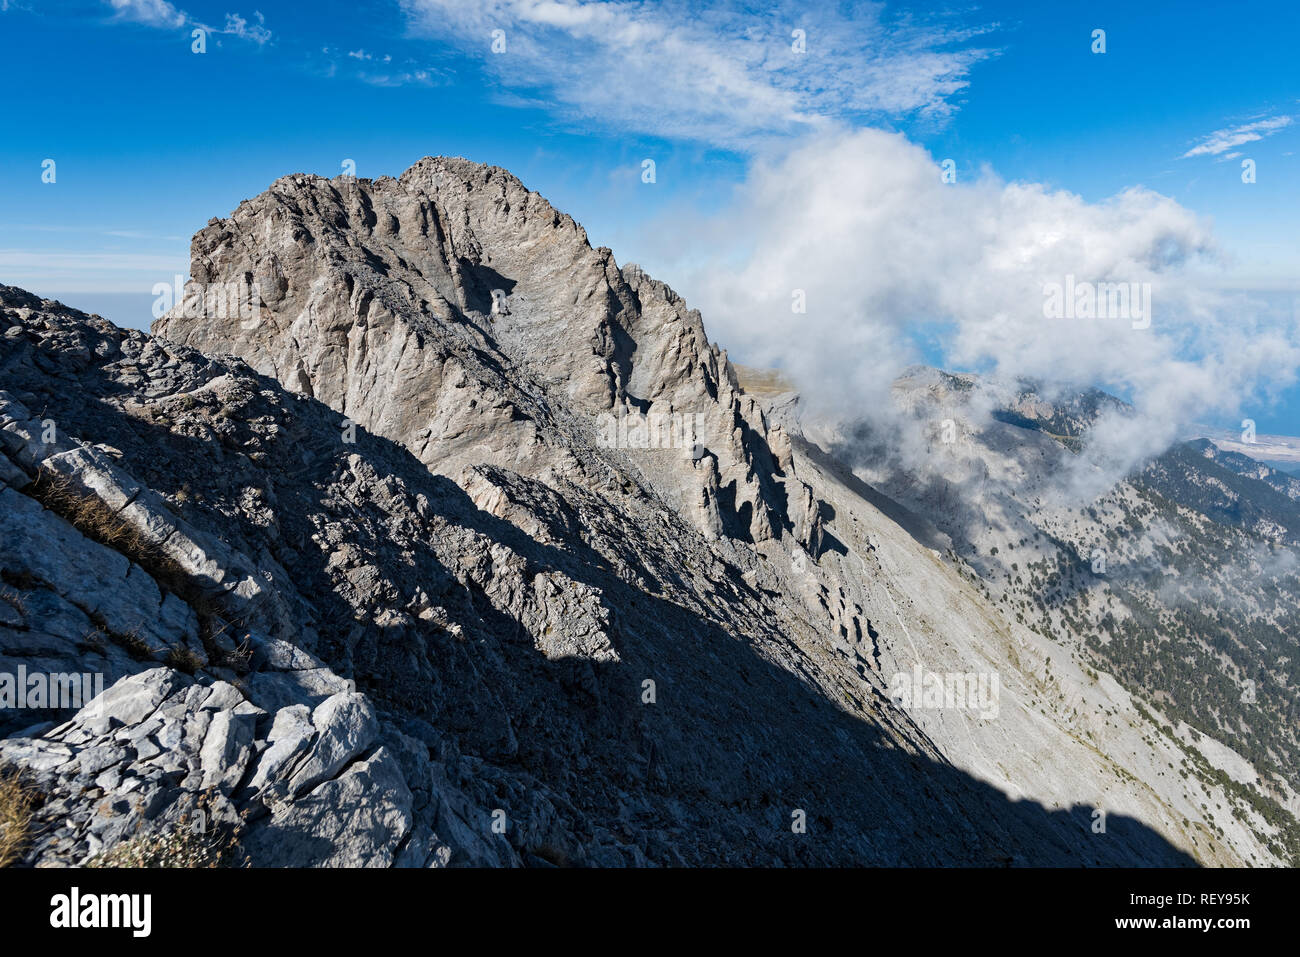 View of Mytikas ,the highest peak of Mount Olympus in Greece, home of the ancient Greek gods - Stock Image